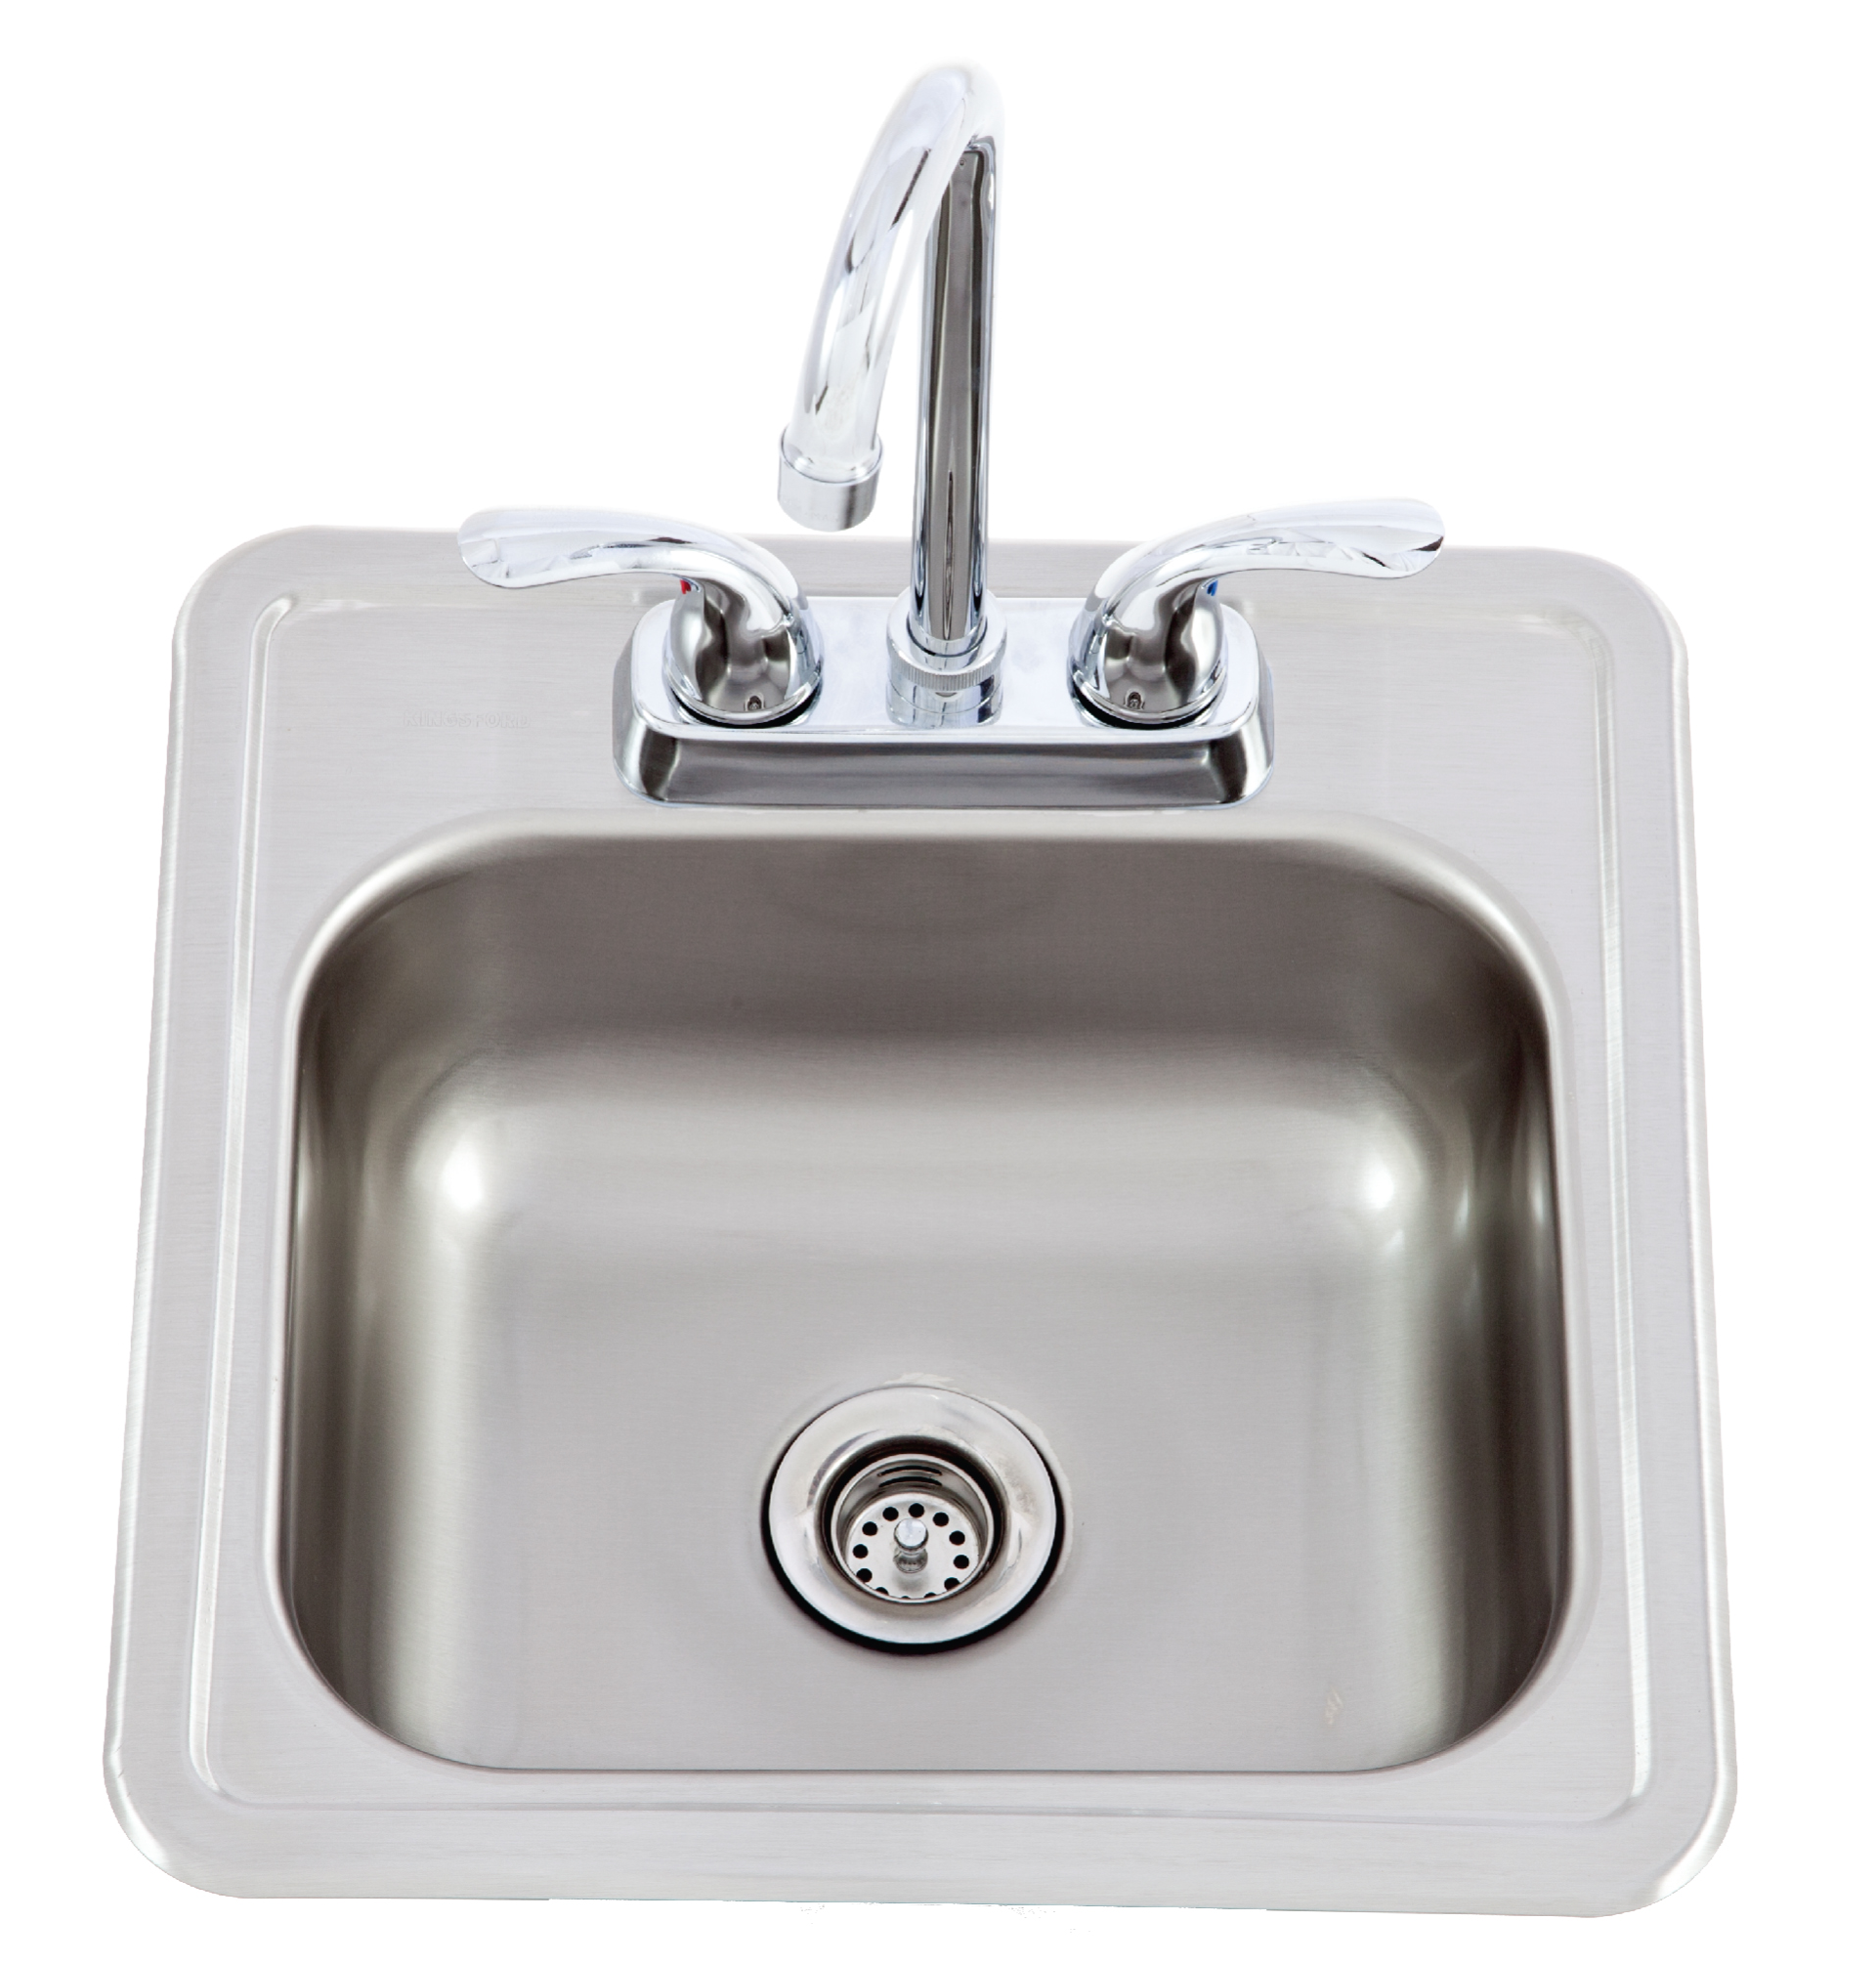 Bar Sink Faucet : Bar Faucet and Sink